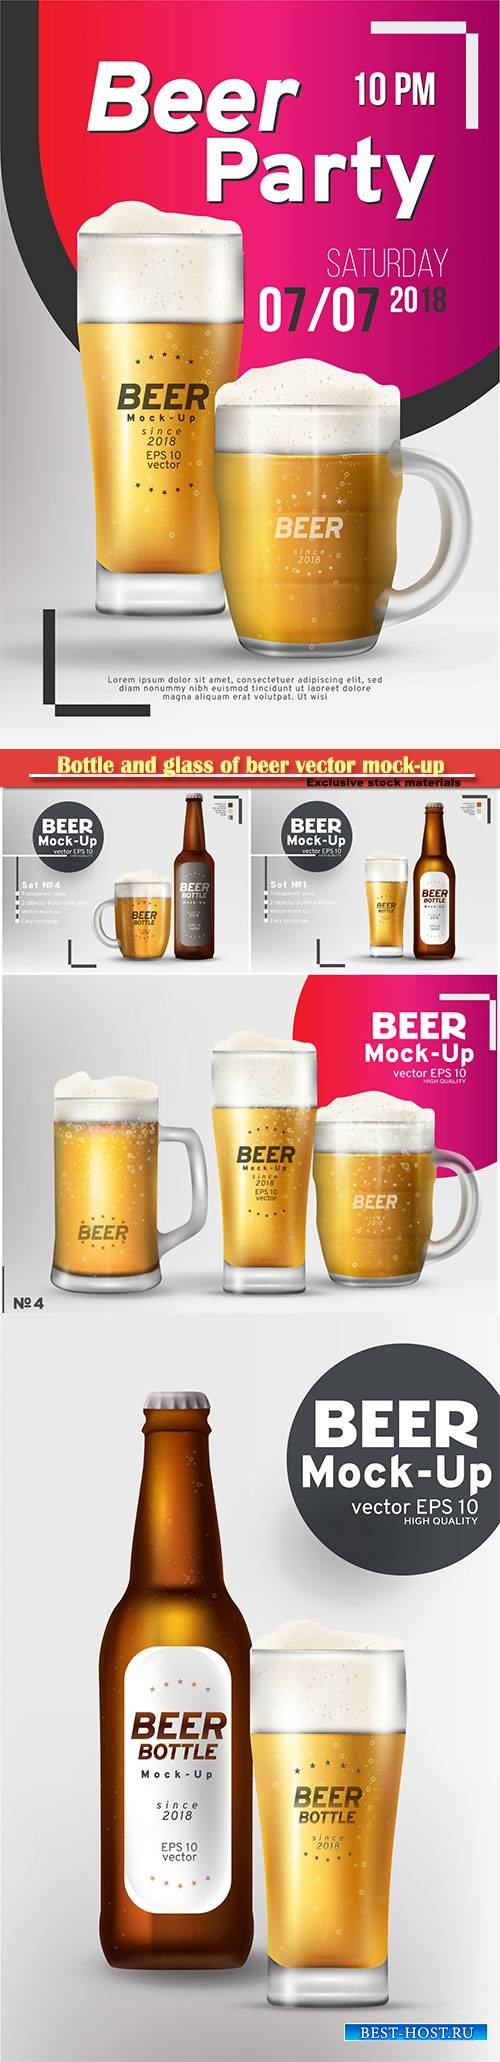 Bottle and glass of beer vector mock-up set